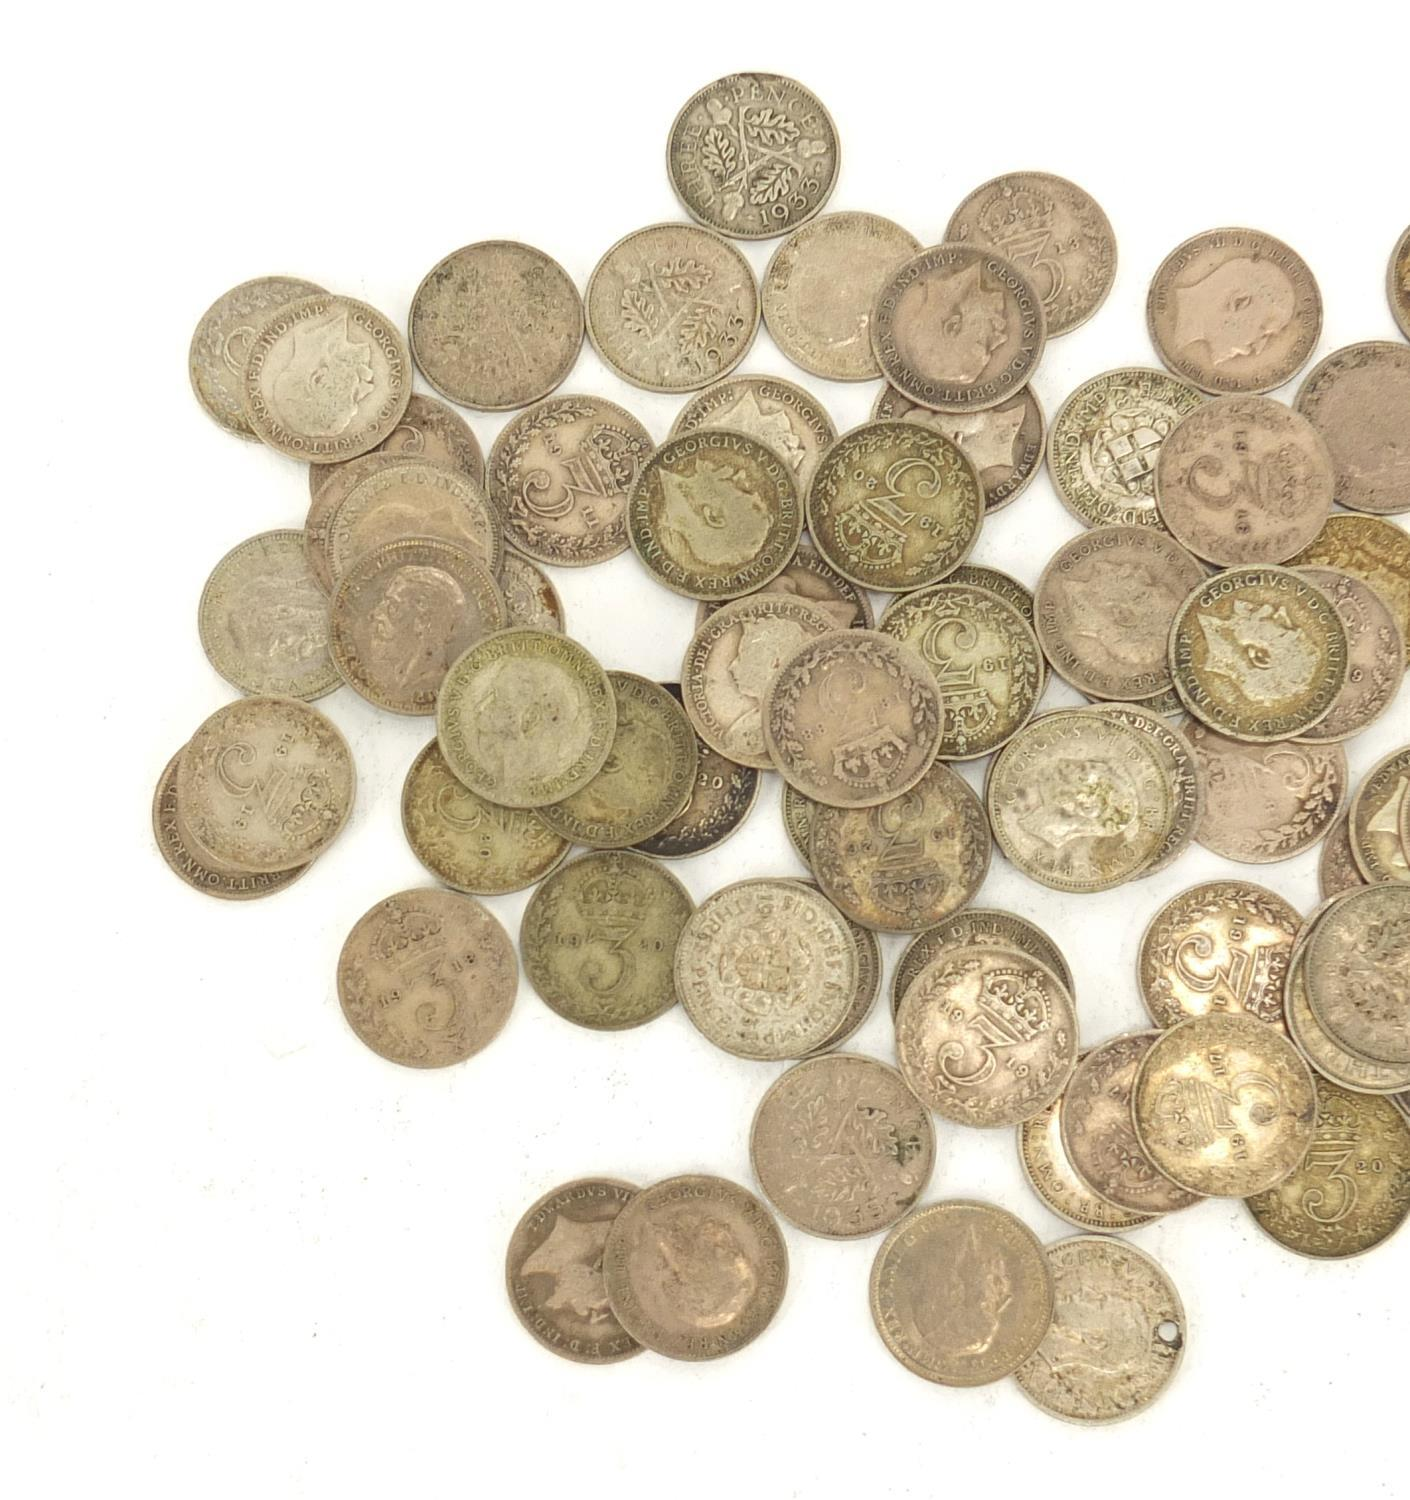 Lot 975 - Mostly pre 1947 British three penny bits, 106.0g : For Further Condition Reports Please visit our